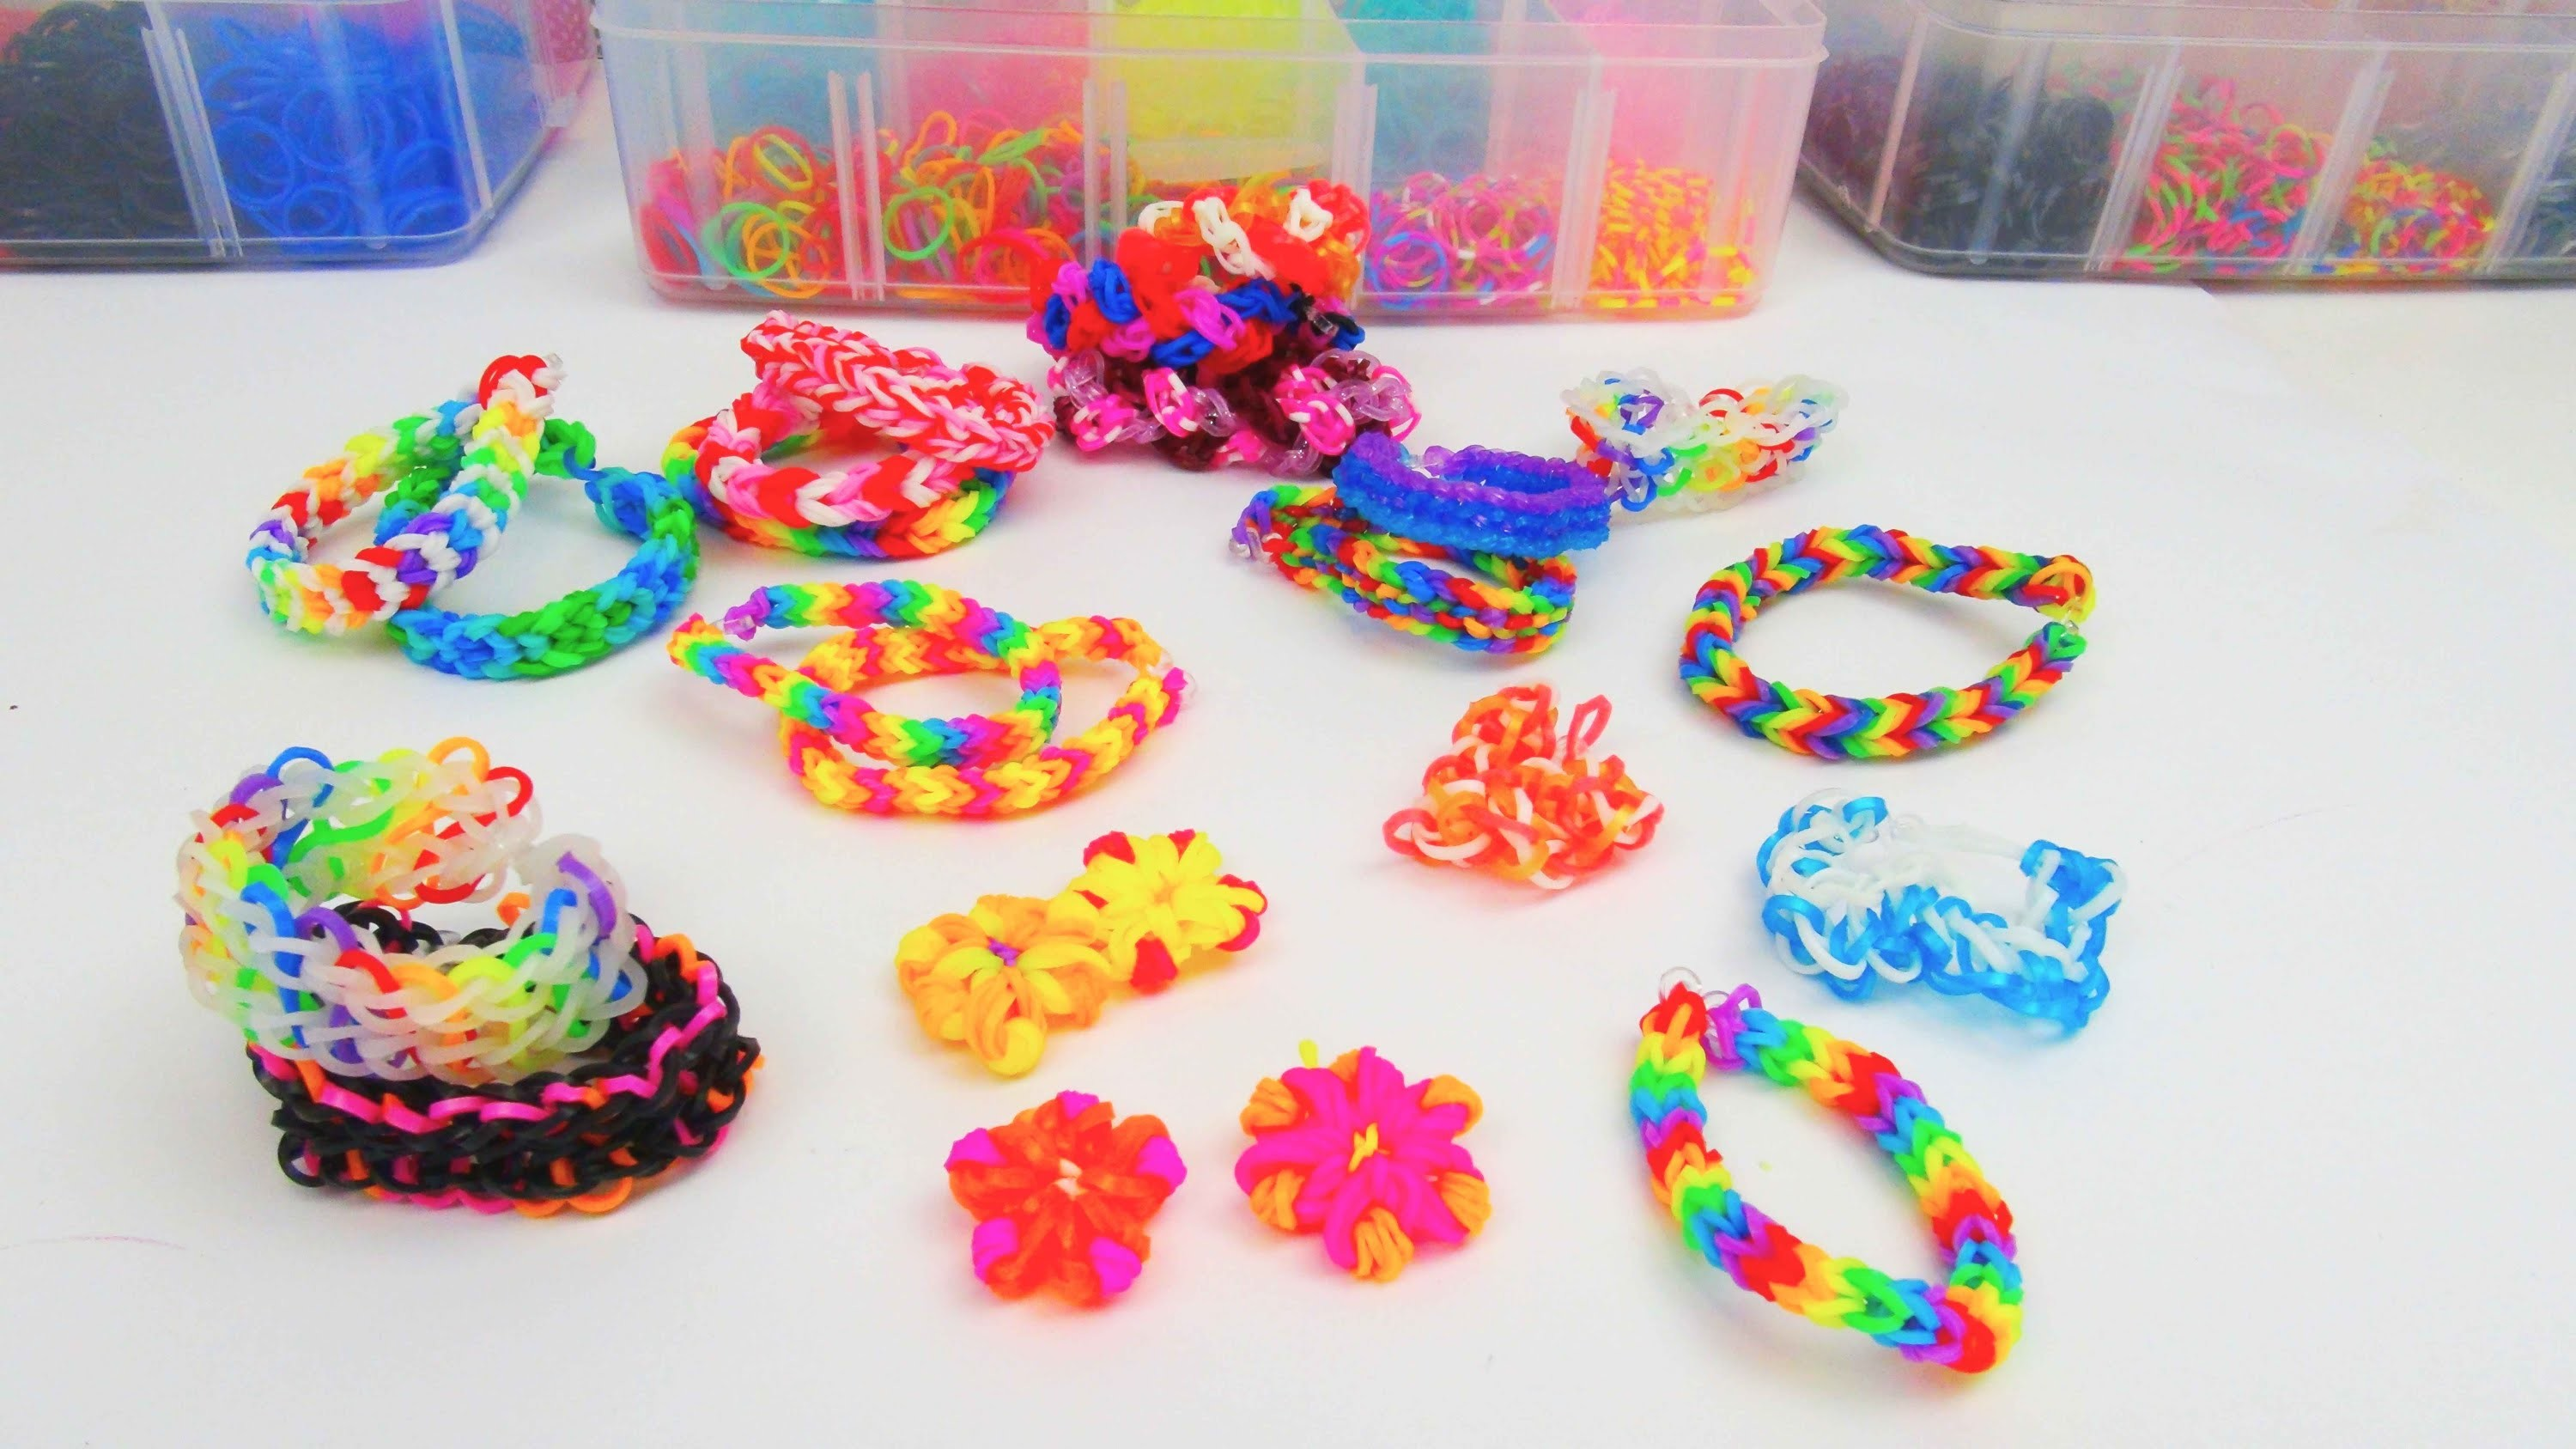 rainbow loom bands infovideo ganz einfache loom bands zum selber machen deutsch. Black Bedroom Furniture Sets. Home Design Ideas